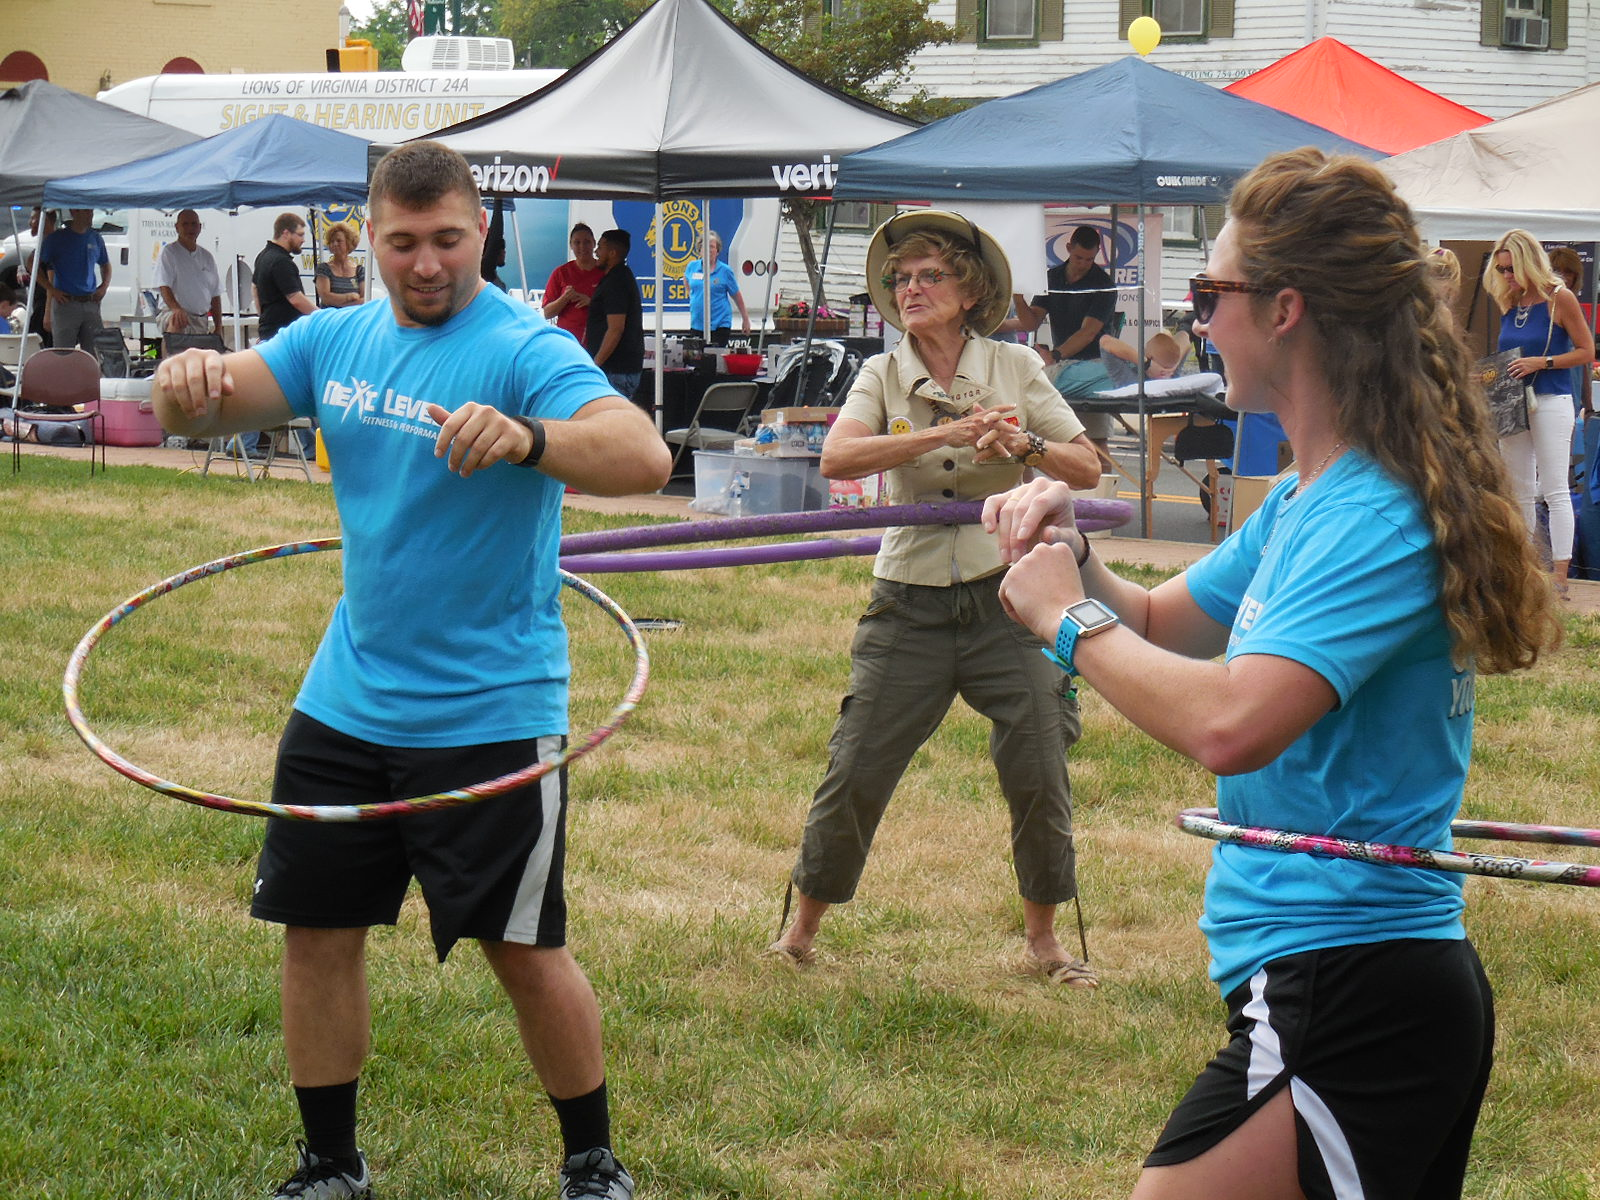 Residents enjoying outdoor activities at the Town's annual Health and Fitness Day Town Event.